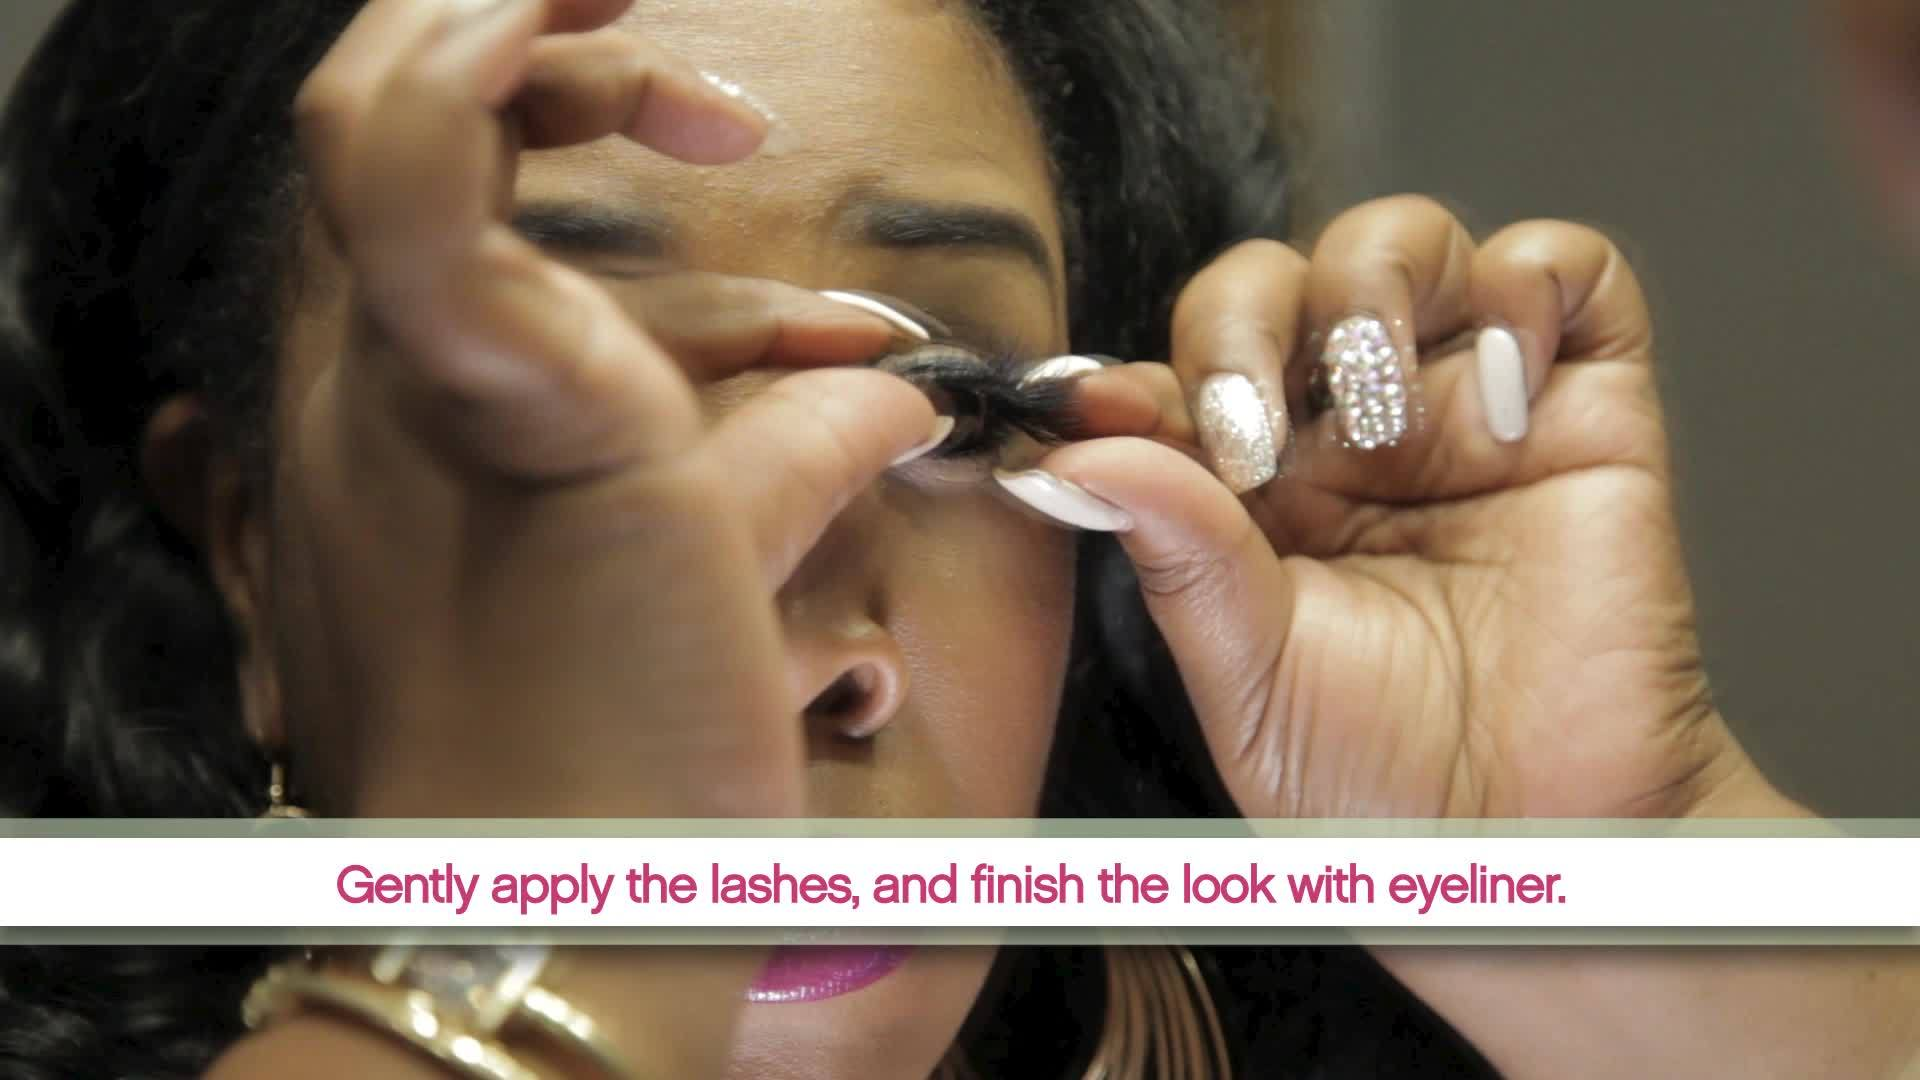 How_to__apply_lush_lashes_6_20181219163450